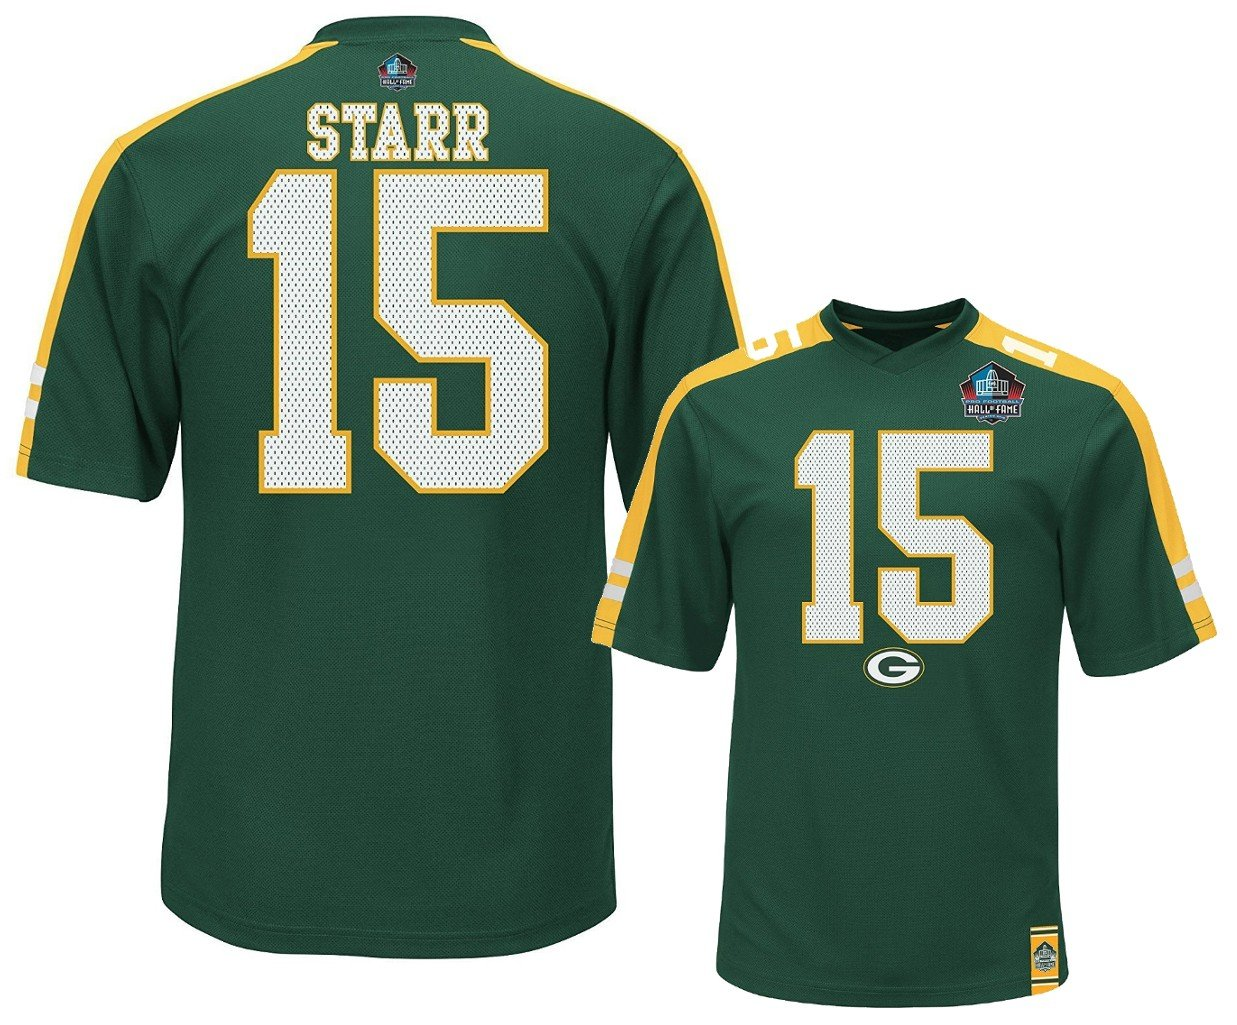 quality design 940ba 3c286 Amazon.com : Bart Starr Green Bay Packers NFL Mens Hashmark ...